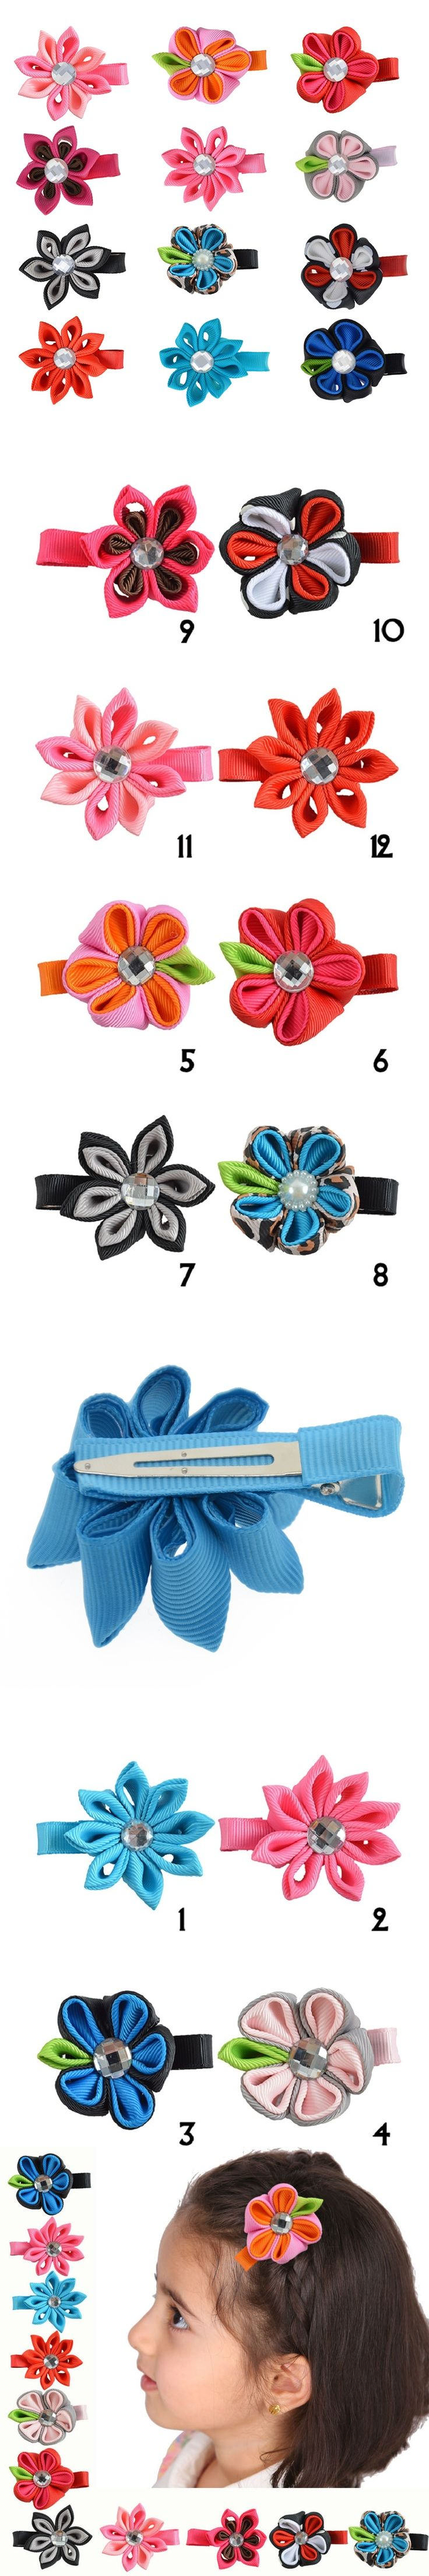 "12PCS 2-2.5"" Hair Clip For Girls Kids Cute Flower Hair bows With Alligator Clip Ribbon Hairpin Unique Hair Accessories XCA005"